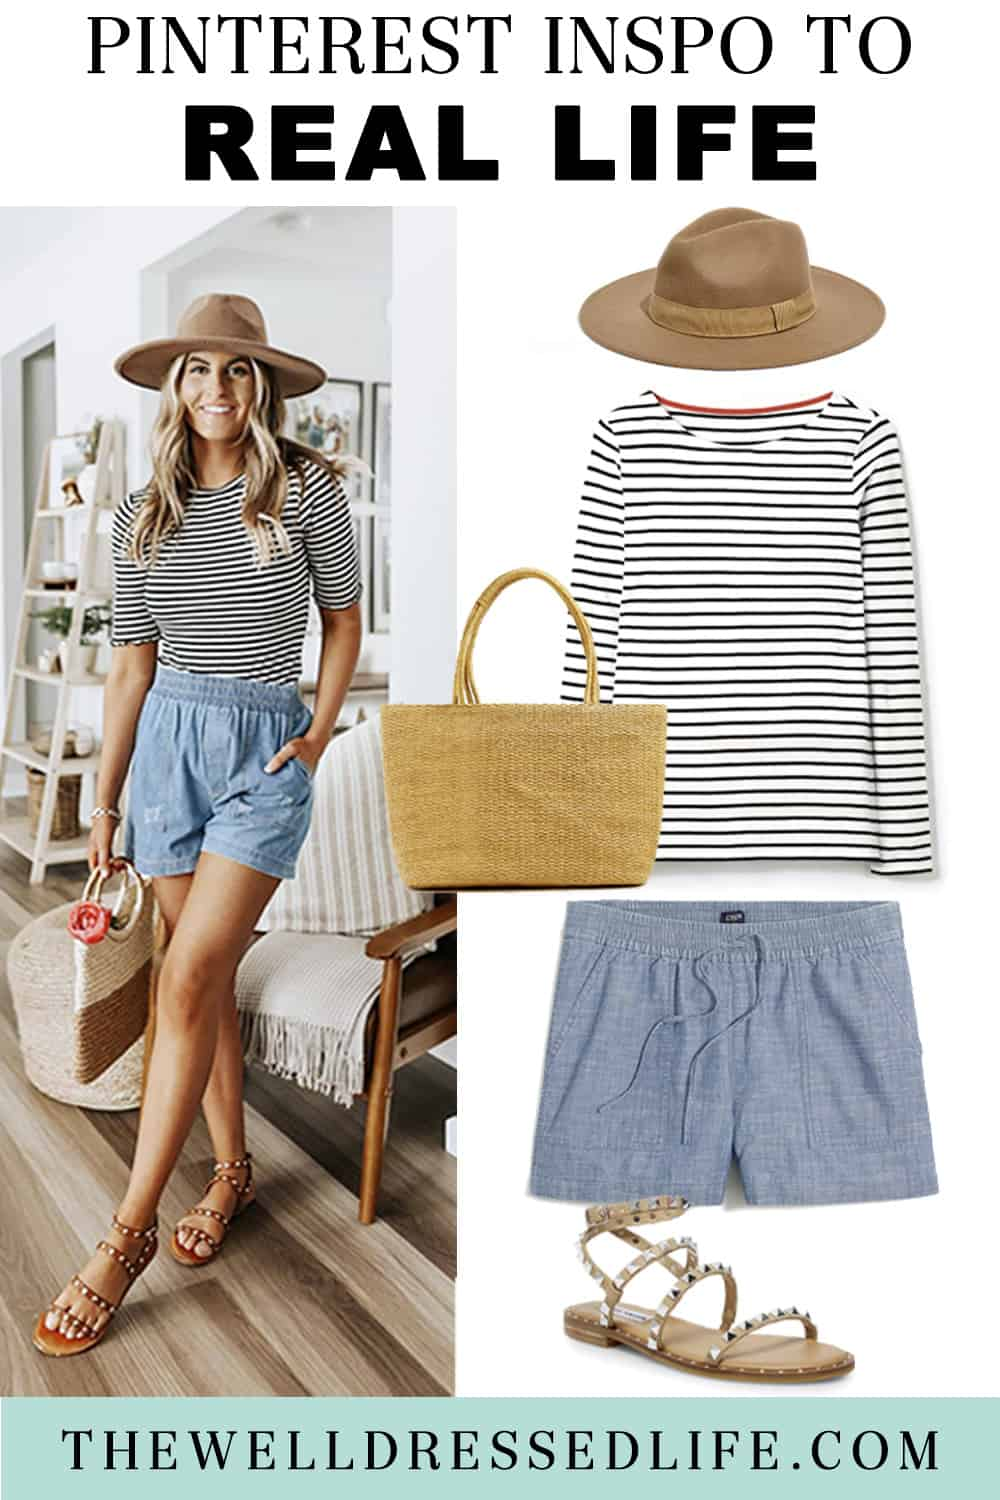 Pinterest in Real Life: Making Shorts an Outfit